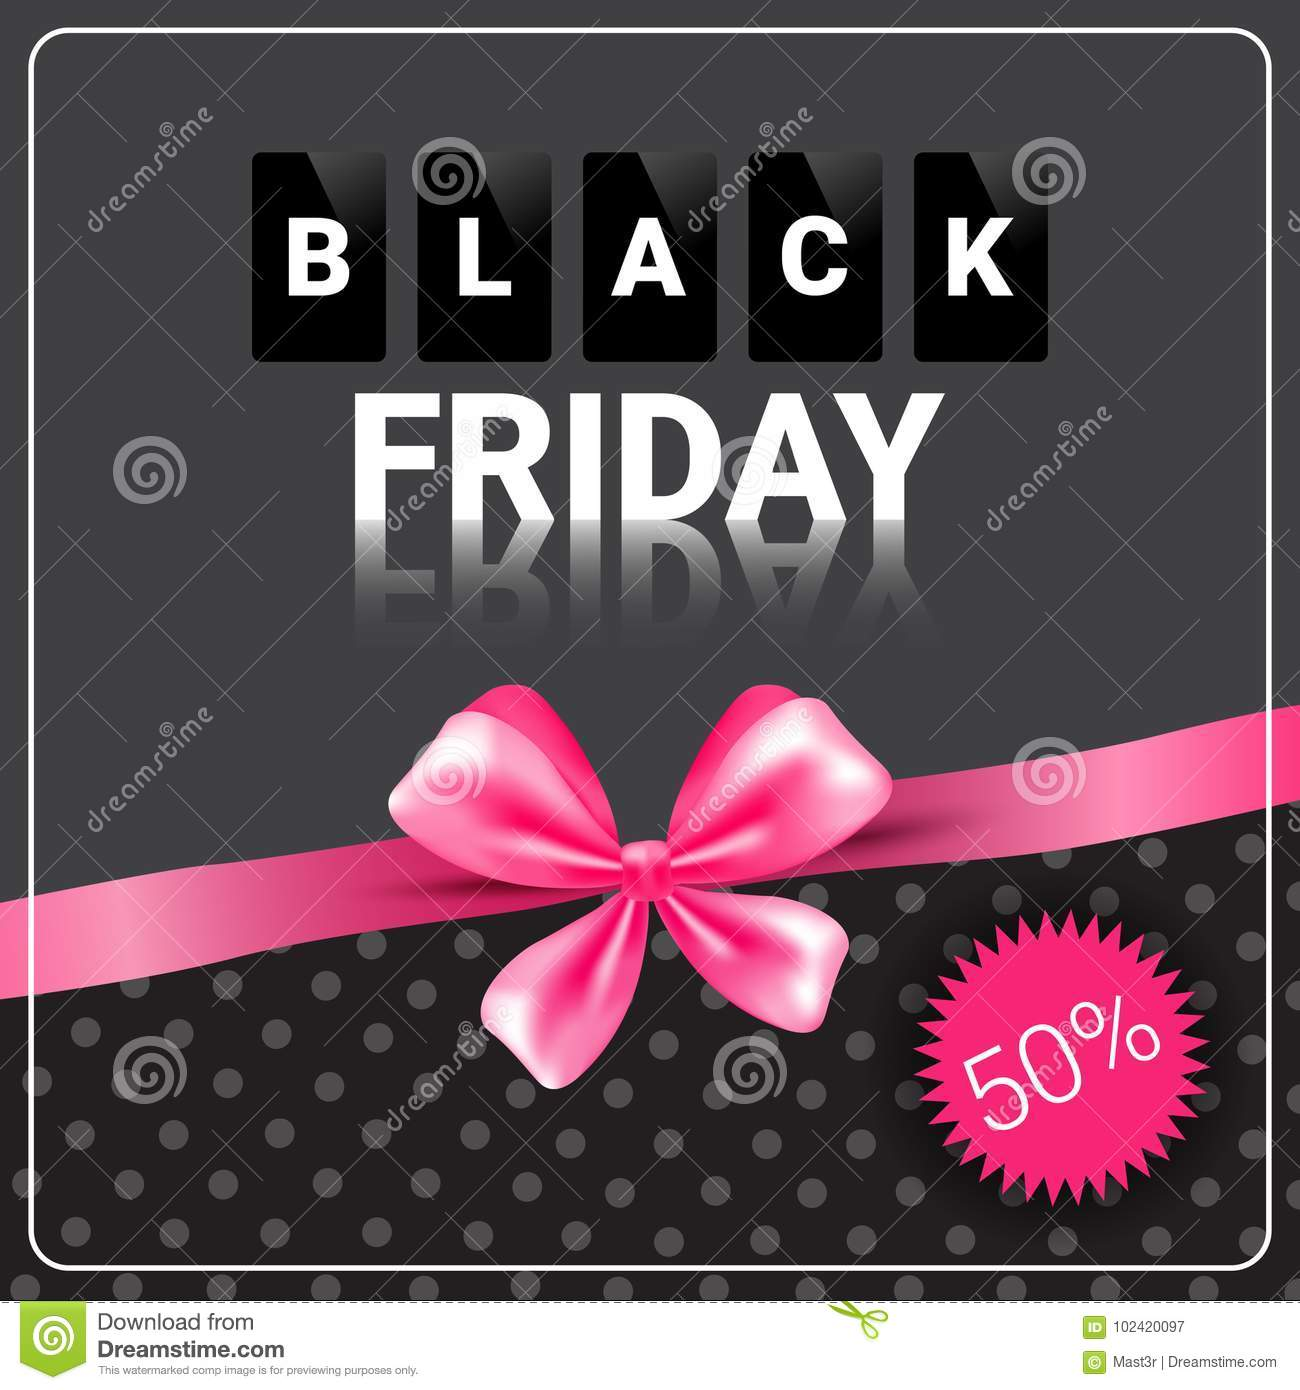 c6337182dc Black Friday Sale Poster Background Pink Ribbon Design Shopping Discount  Flyer